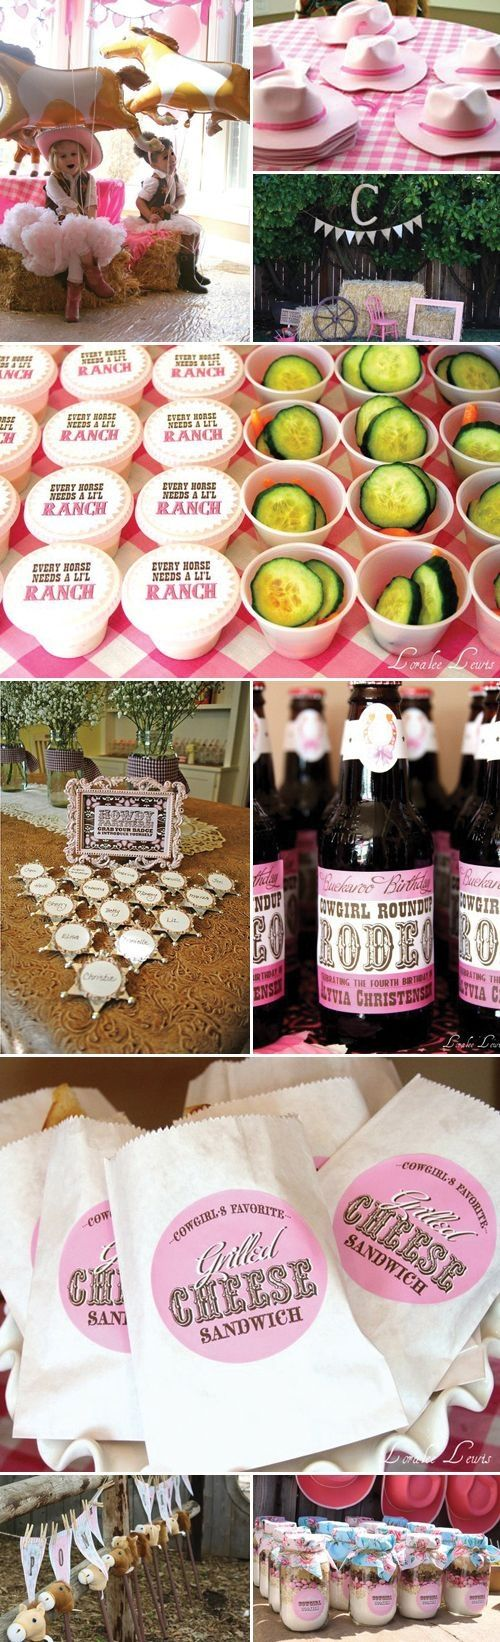 best princess birthday party images on pinterest birthday party